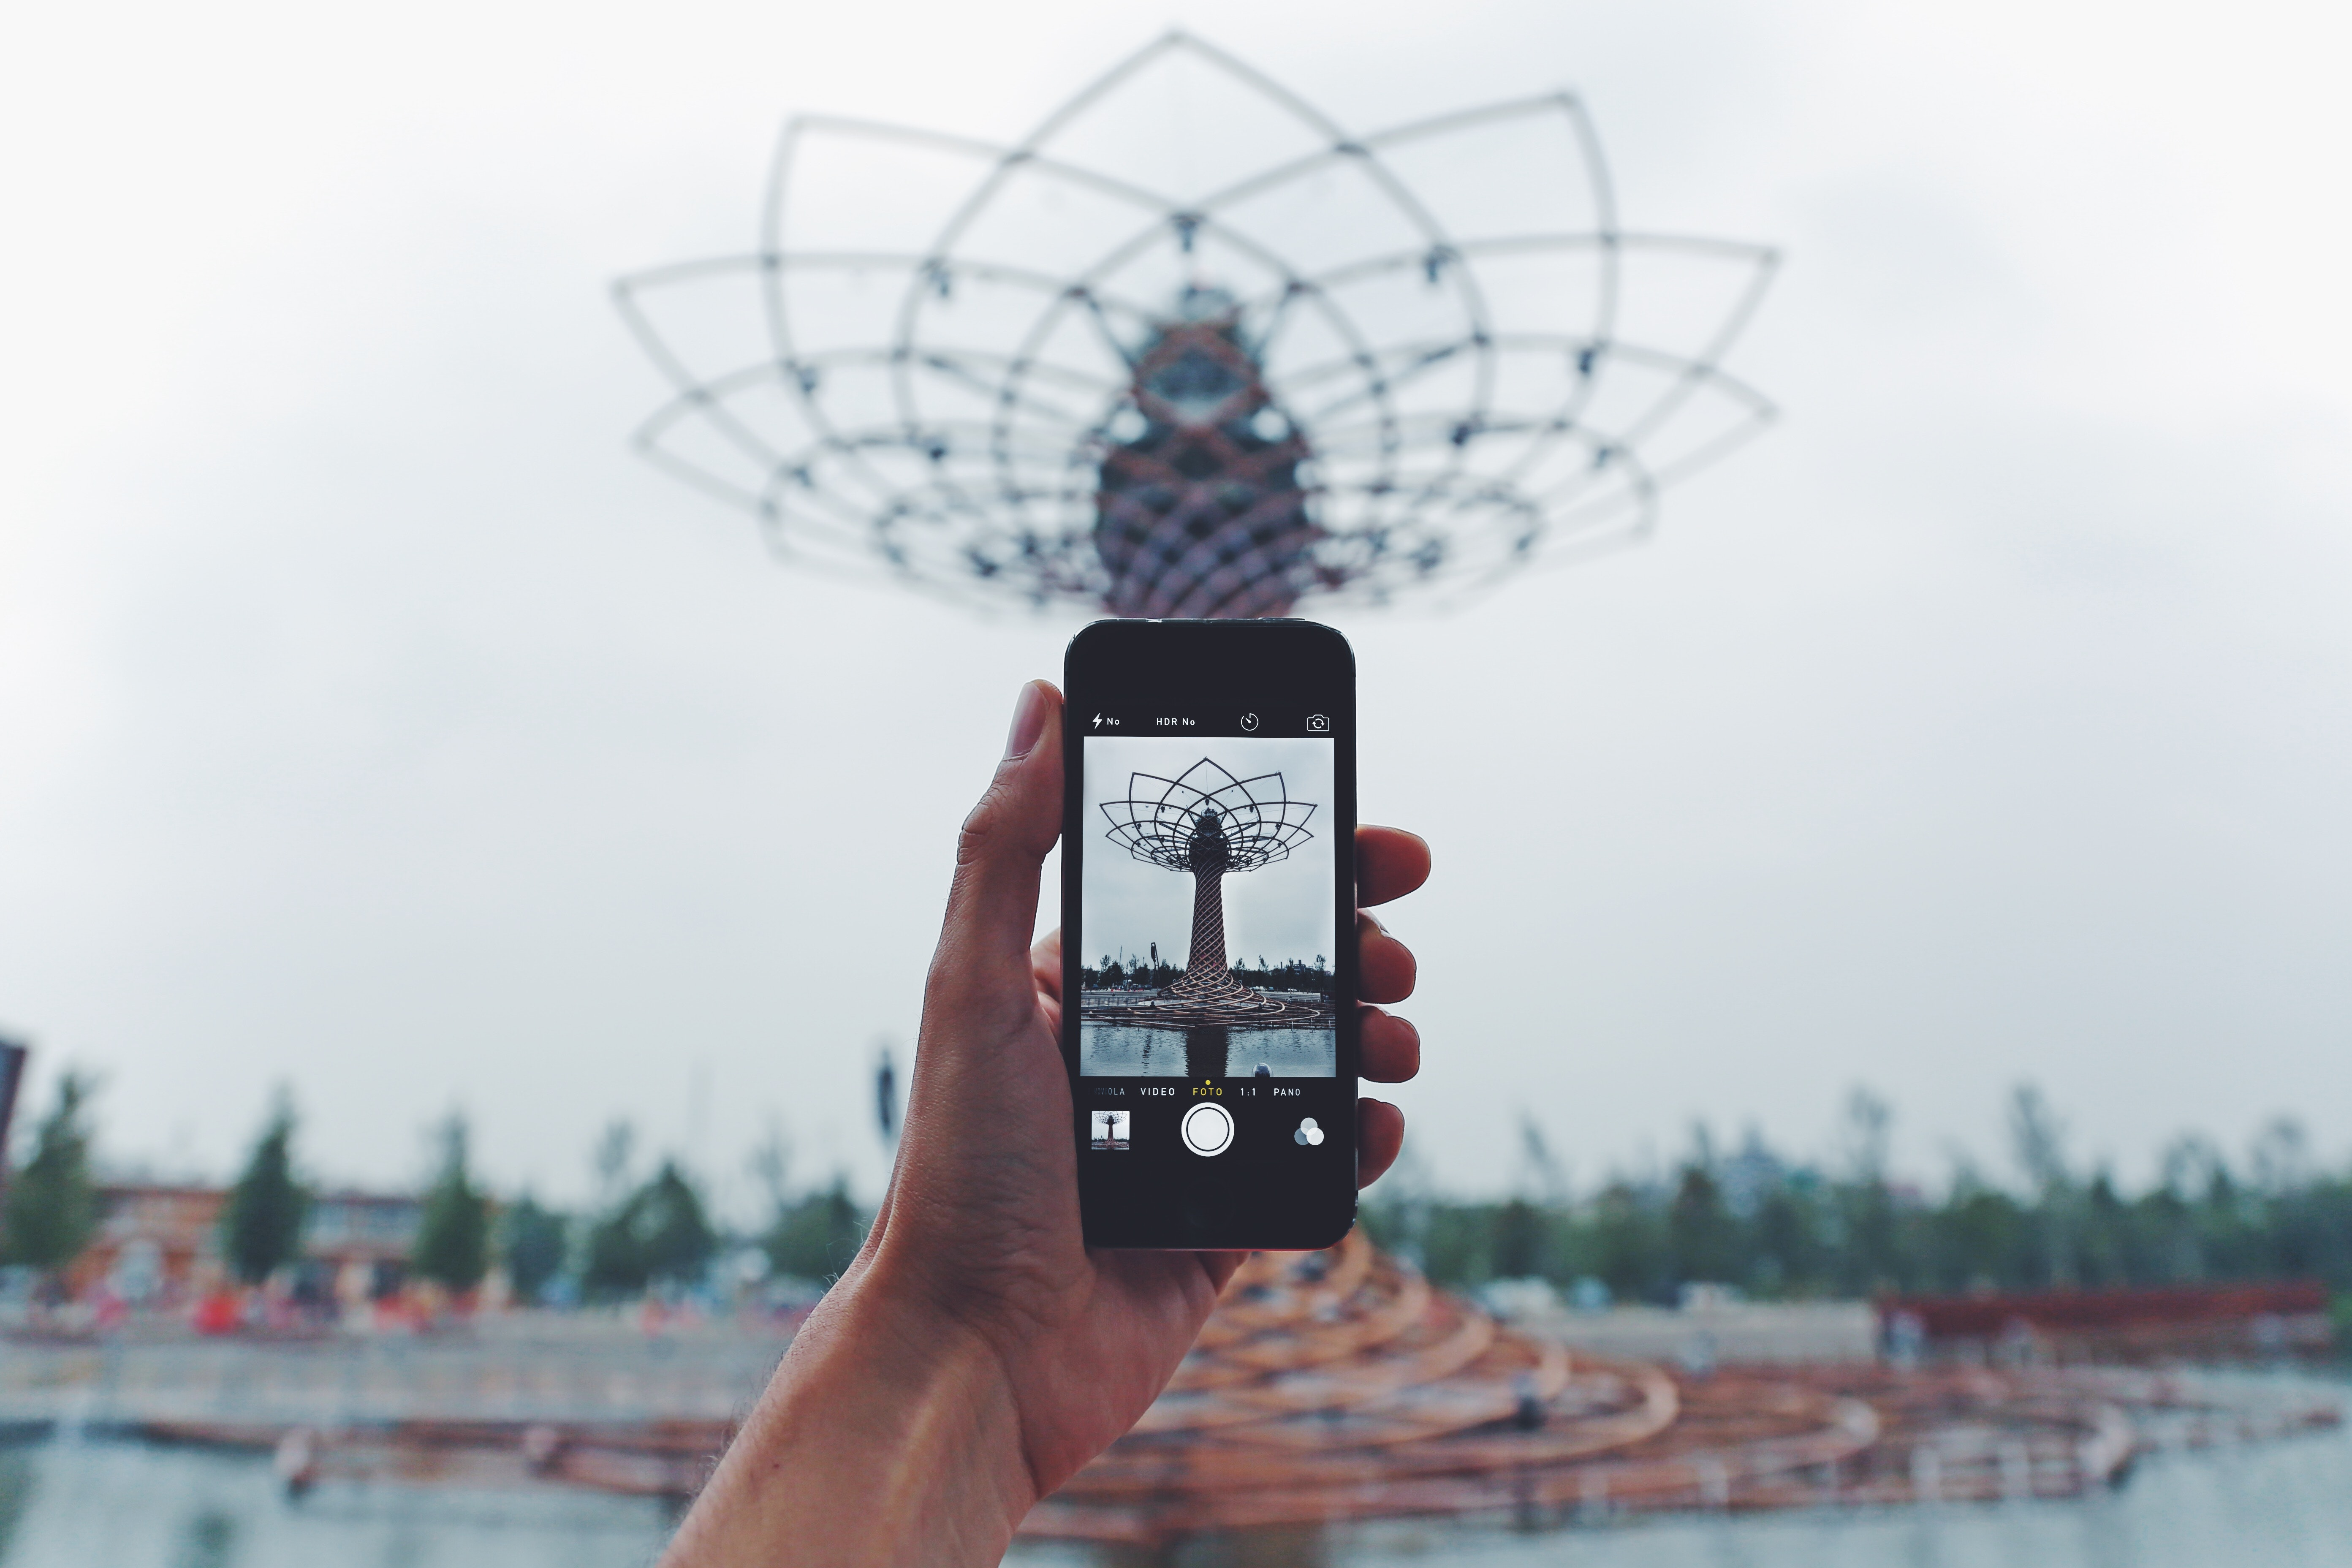 Person Taking Photo of Tower, Architecture, Mobile, Tower, Touchscreen, HQ Photo